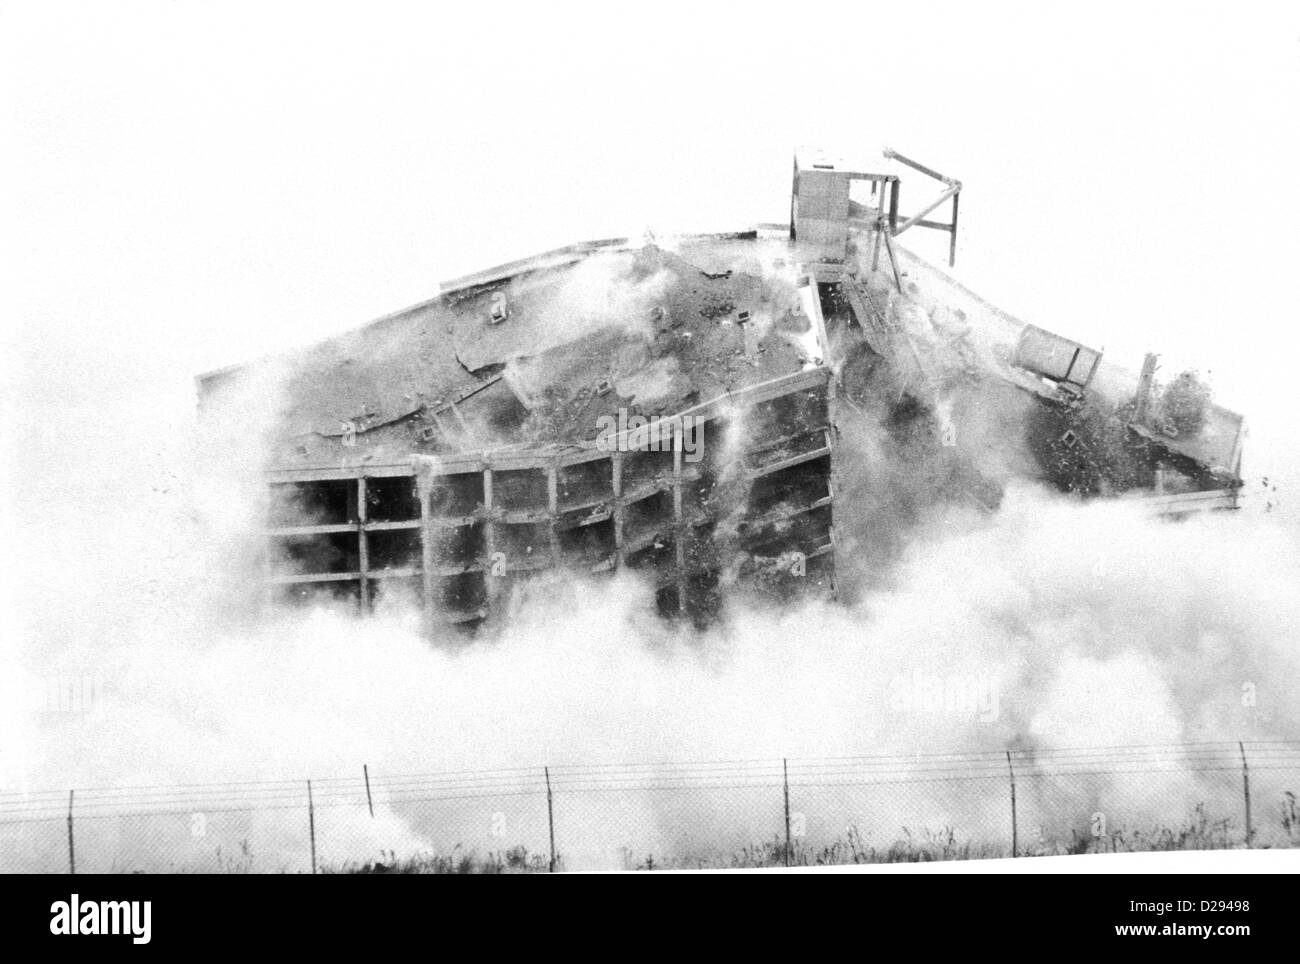 New York, Breezy Point. Building Being Demolished. (#3 In Series) - Stock Image